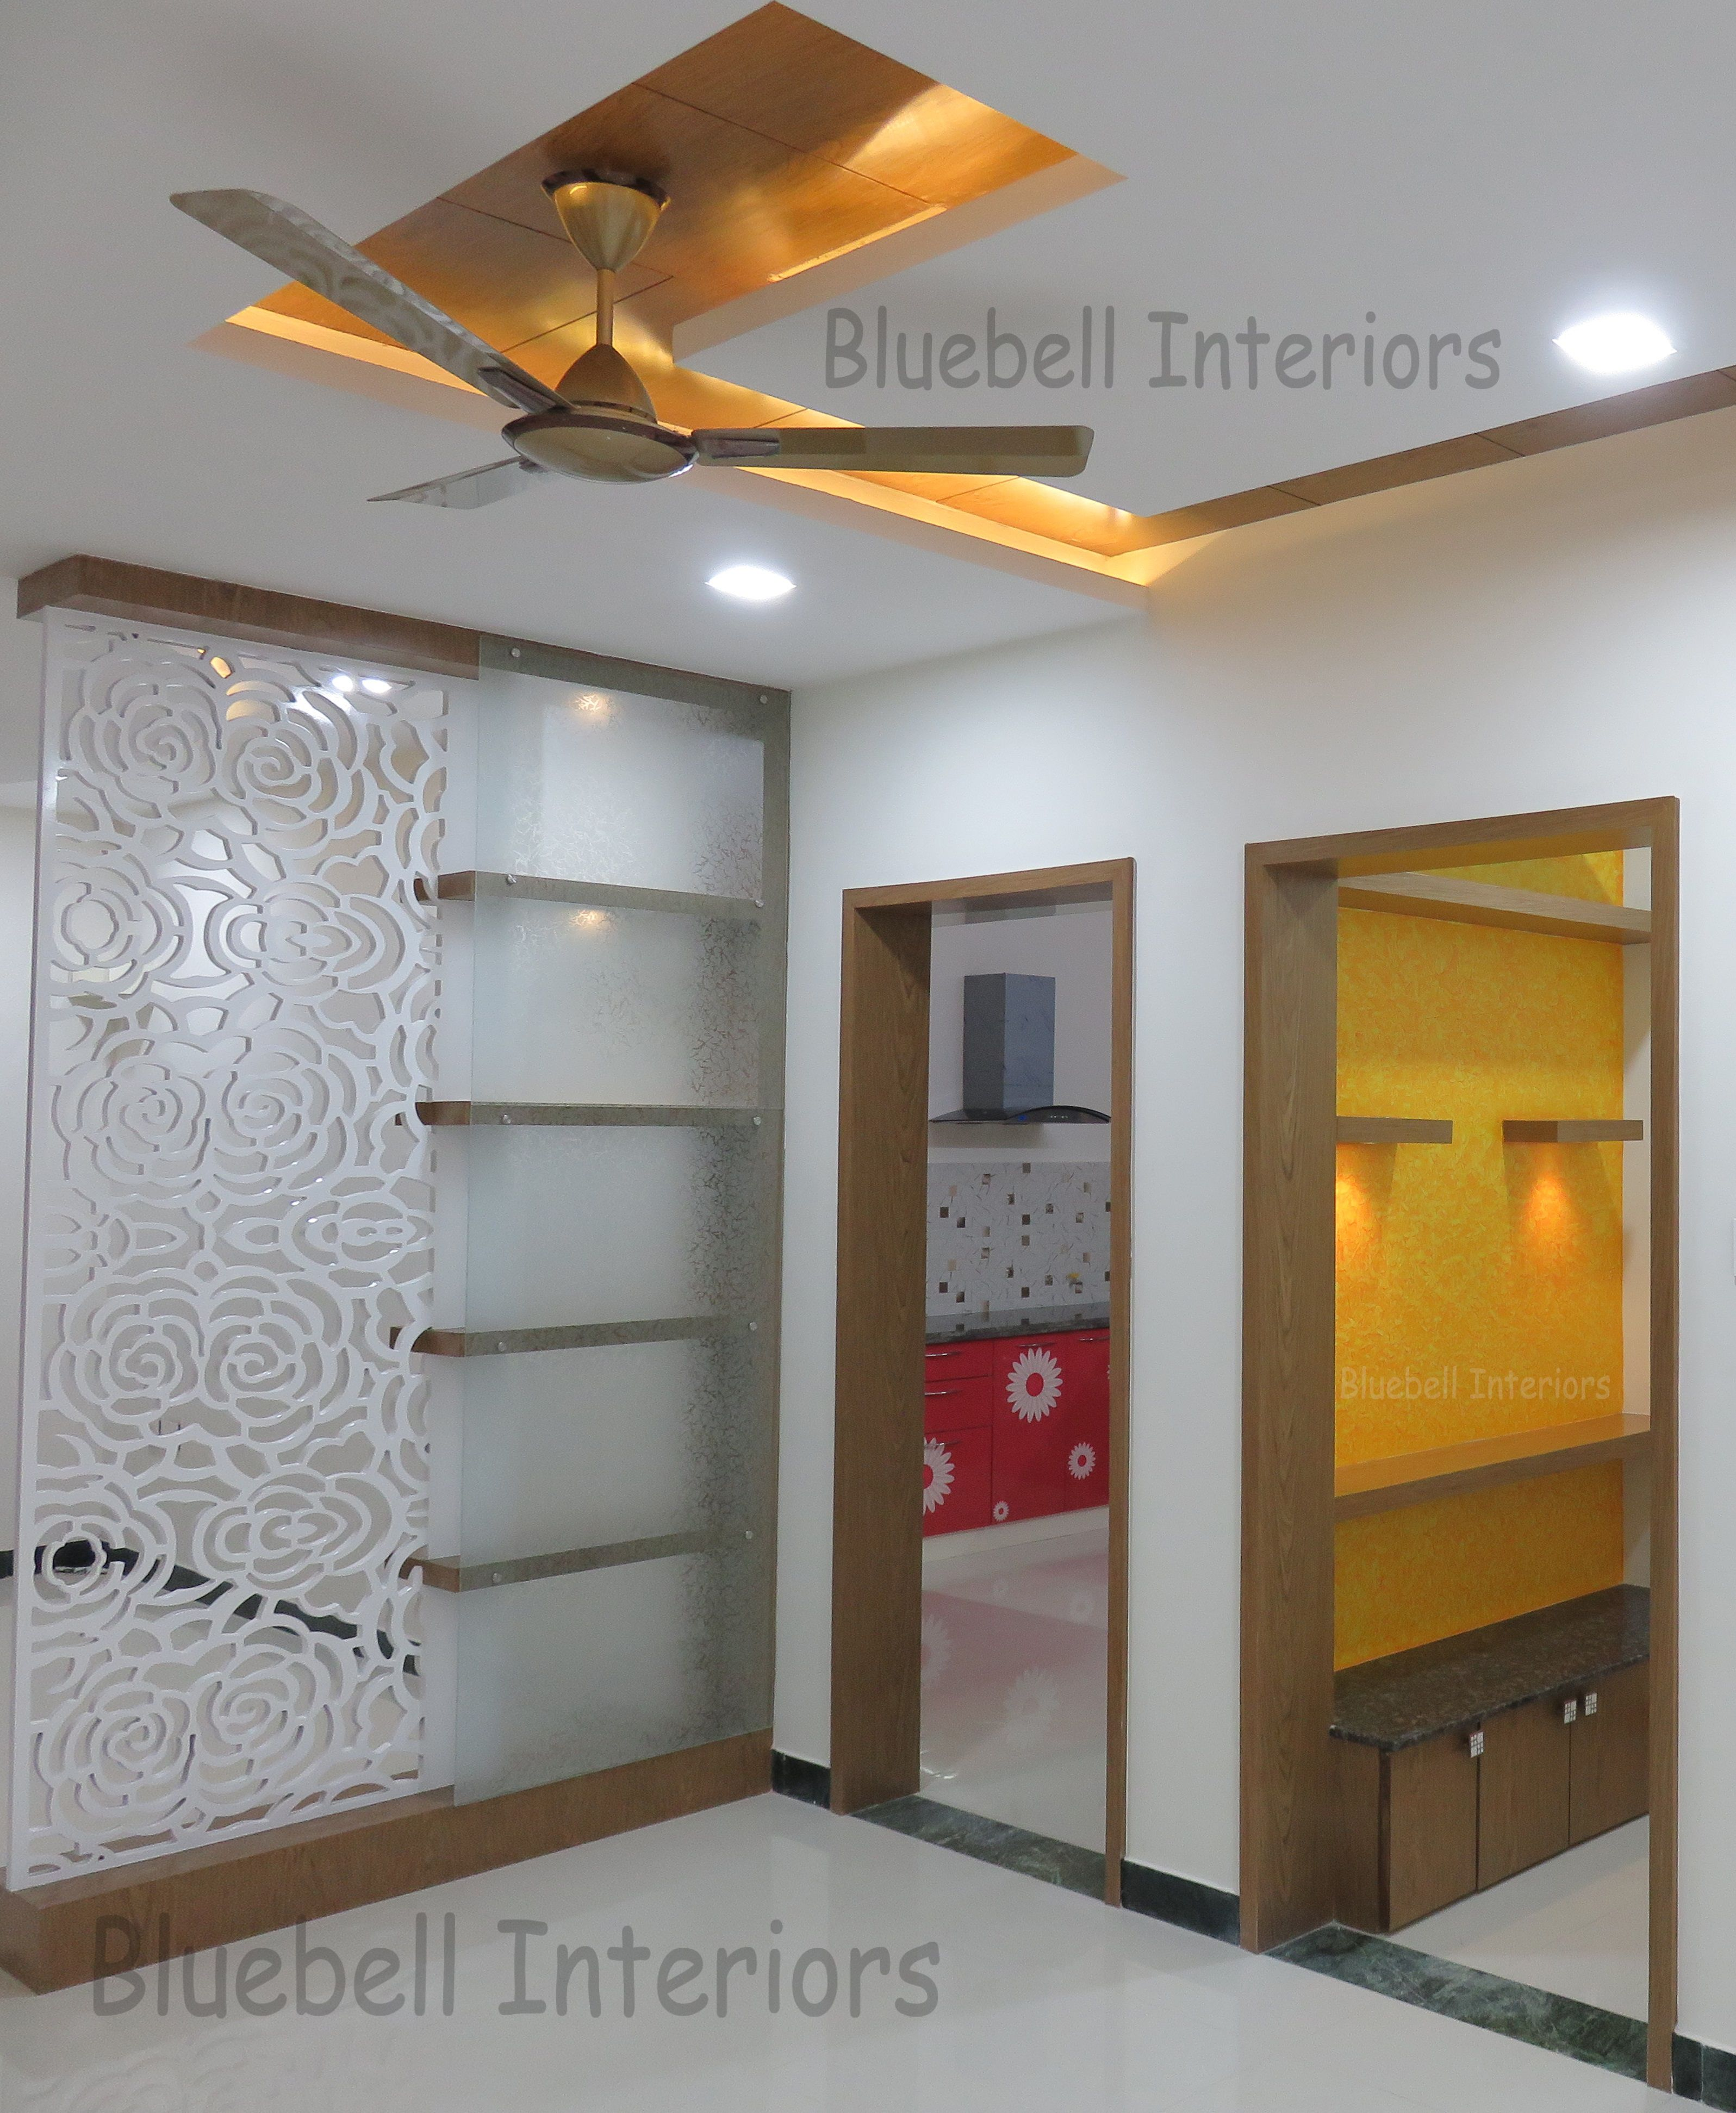 Pin by Md. Riyaz on glass etching (With images) | Living ...